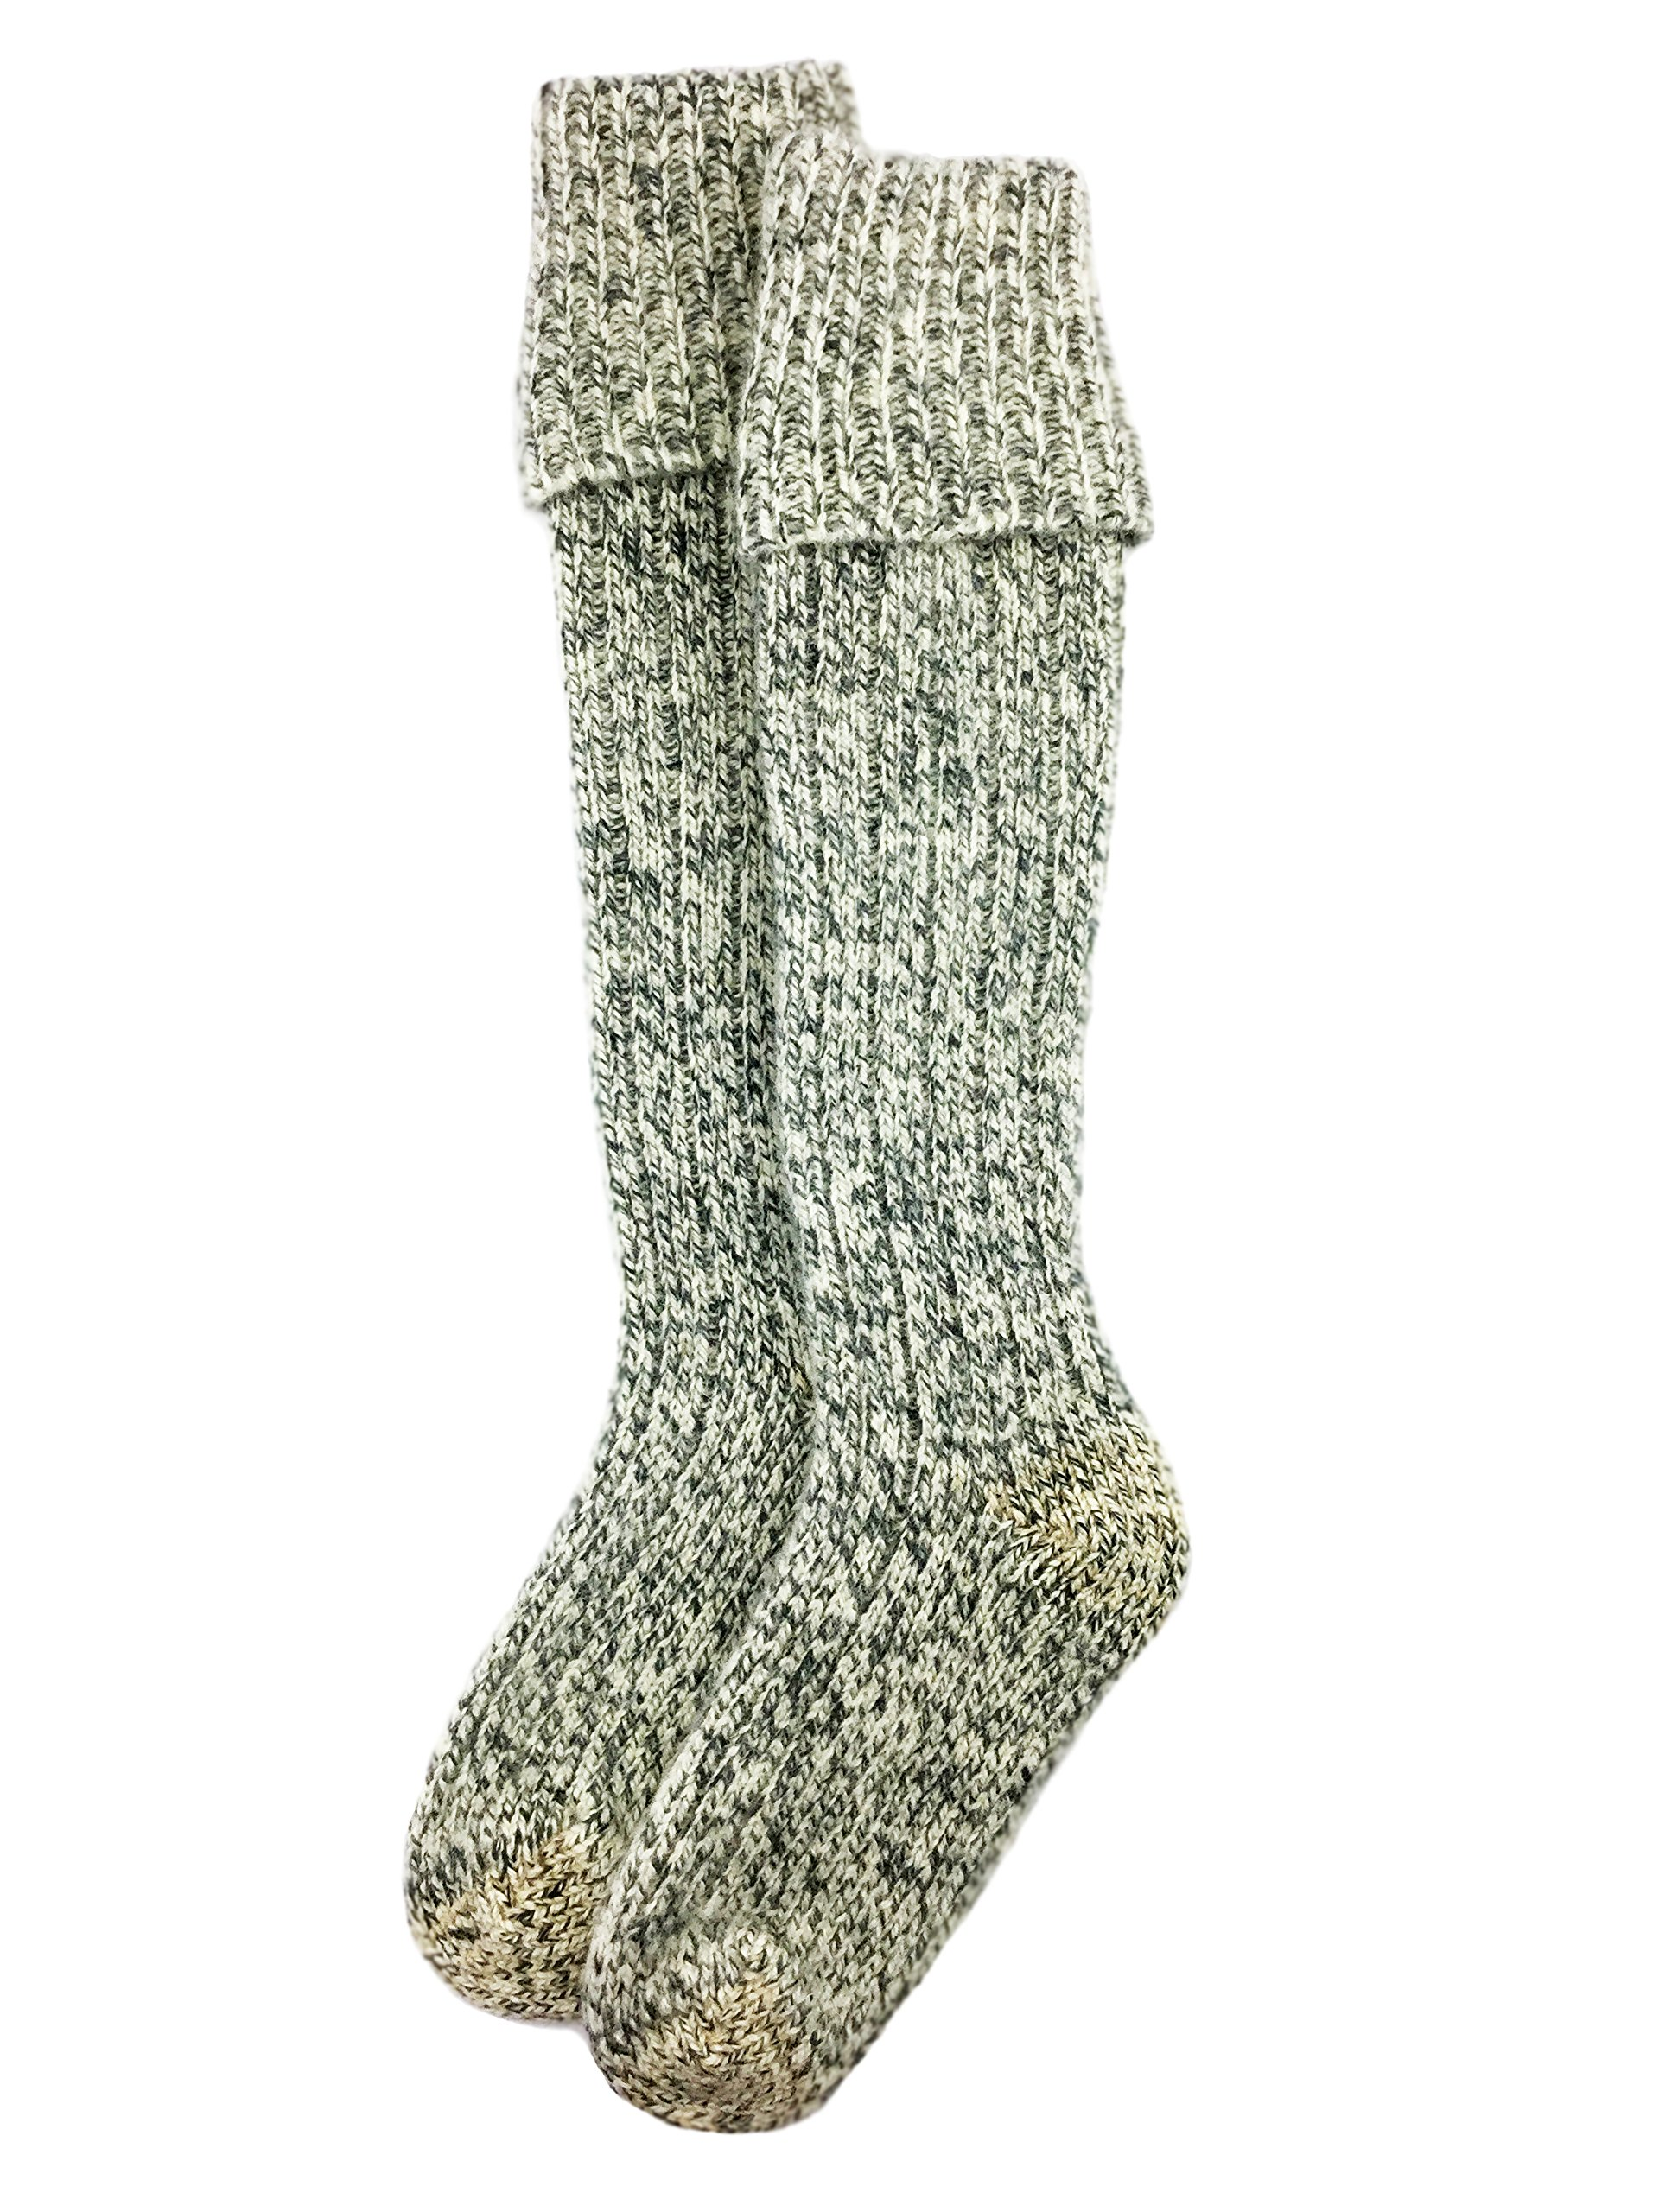 Dachstein Woolwear Over the Knee Austrian Wool Socks (13, Grey) by Dachstein Woolwear